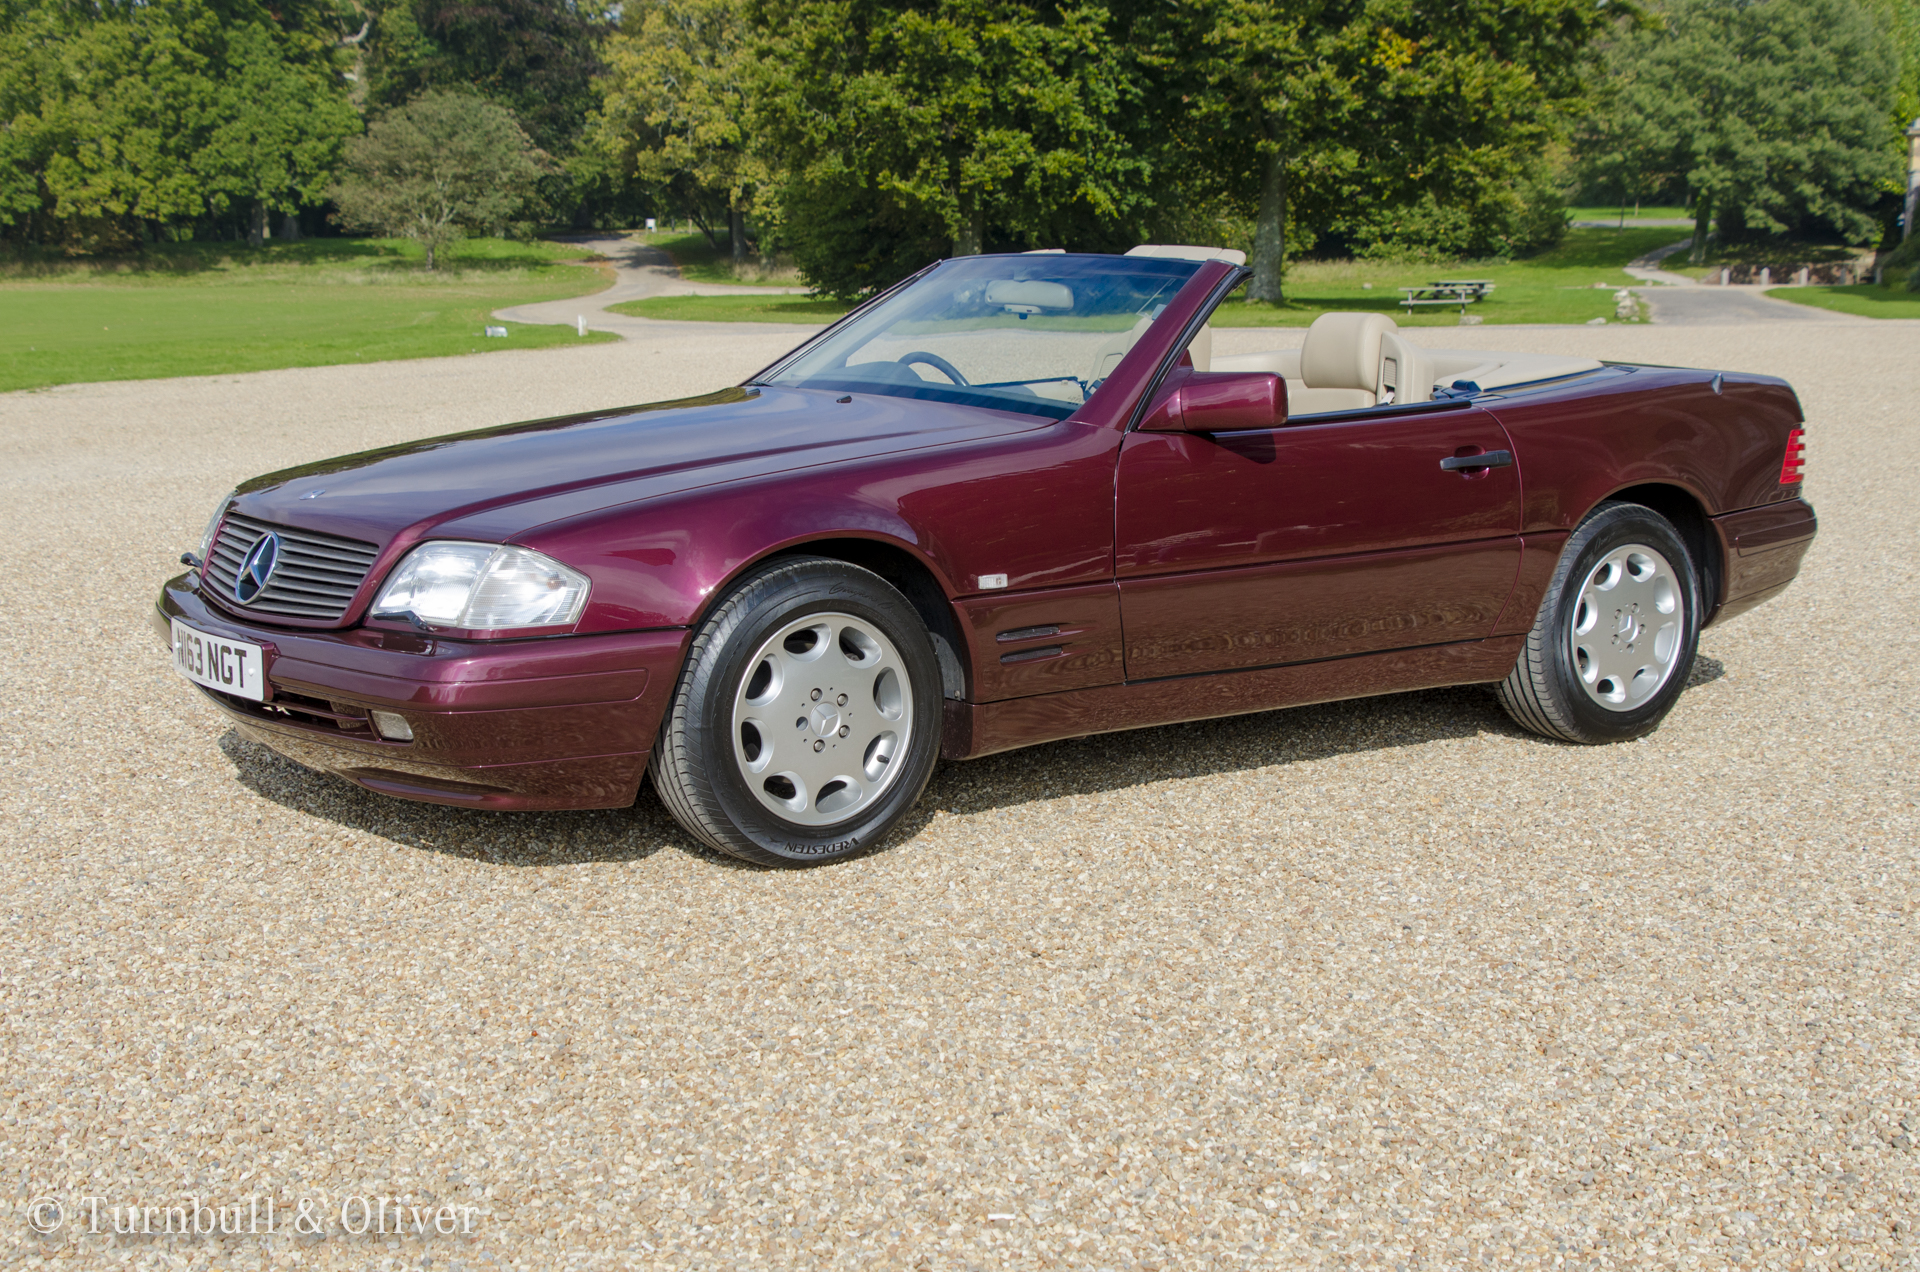 Mercedes benz sl320 beautiful burgundy turnbull oliver for Mercedes benz sl320 for sale